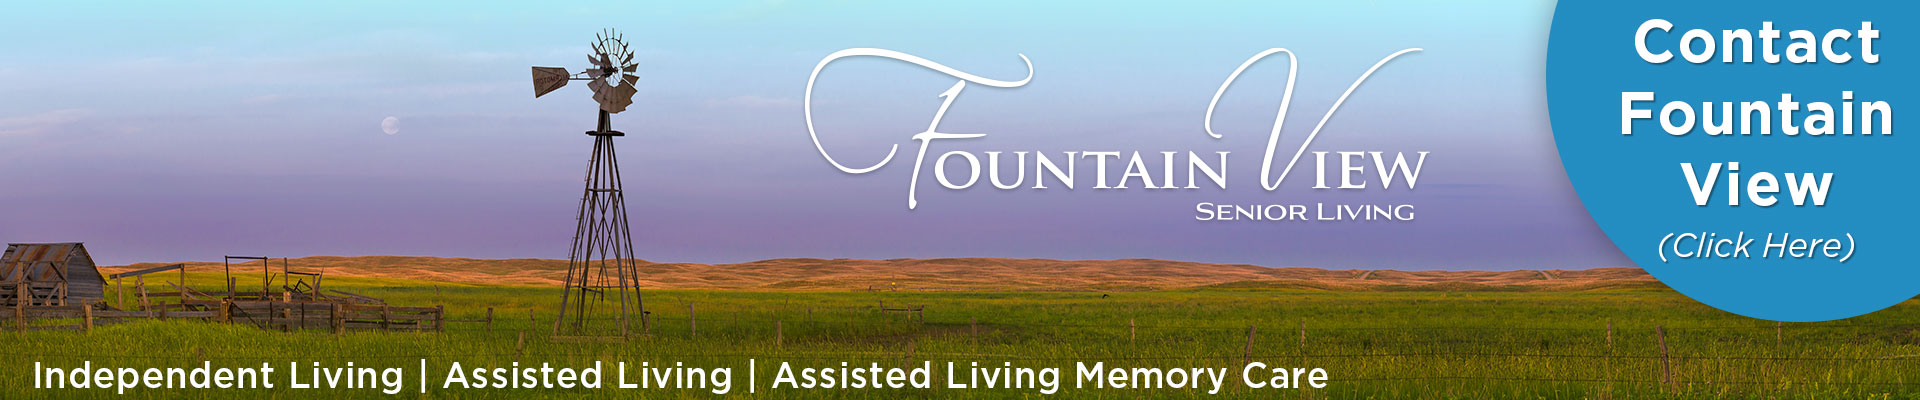 Contact Fountain View Senior Living - Click Here (Image of Nebraska landscape with windmill)